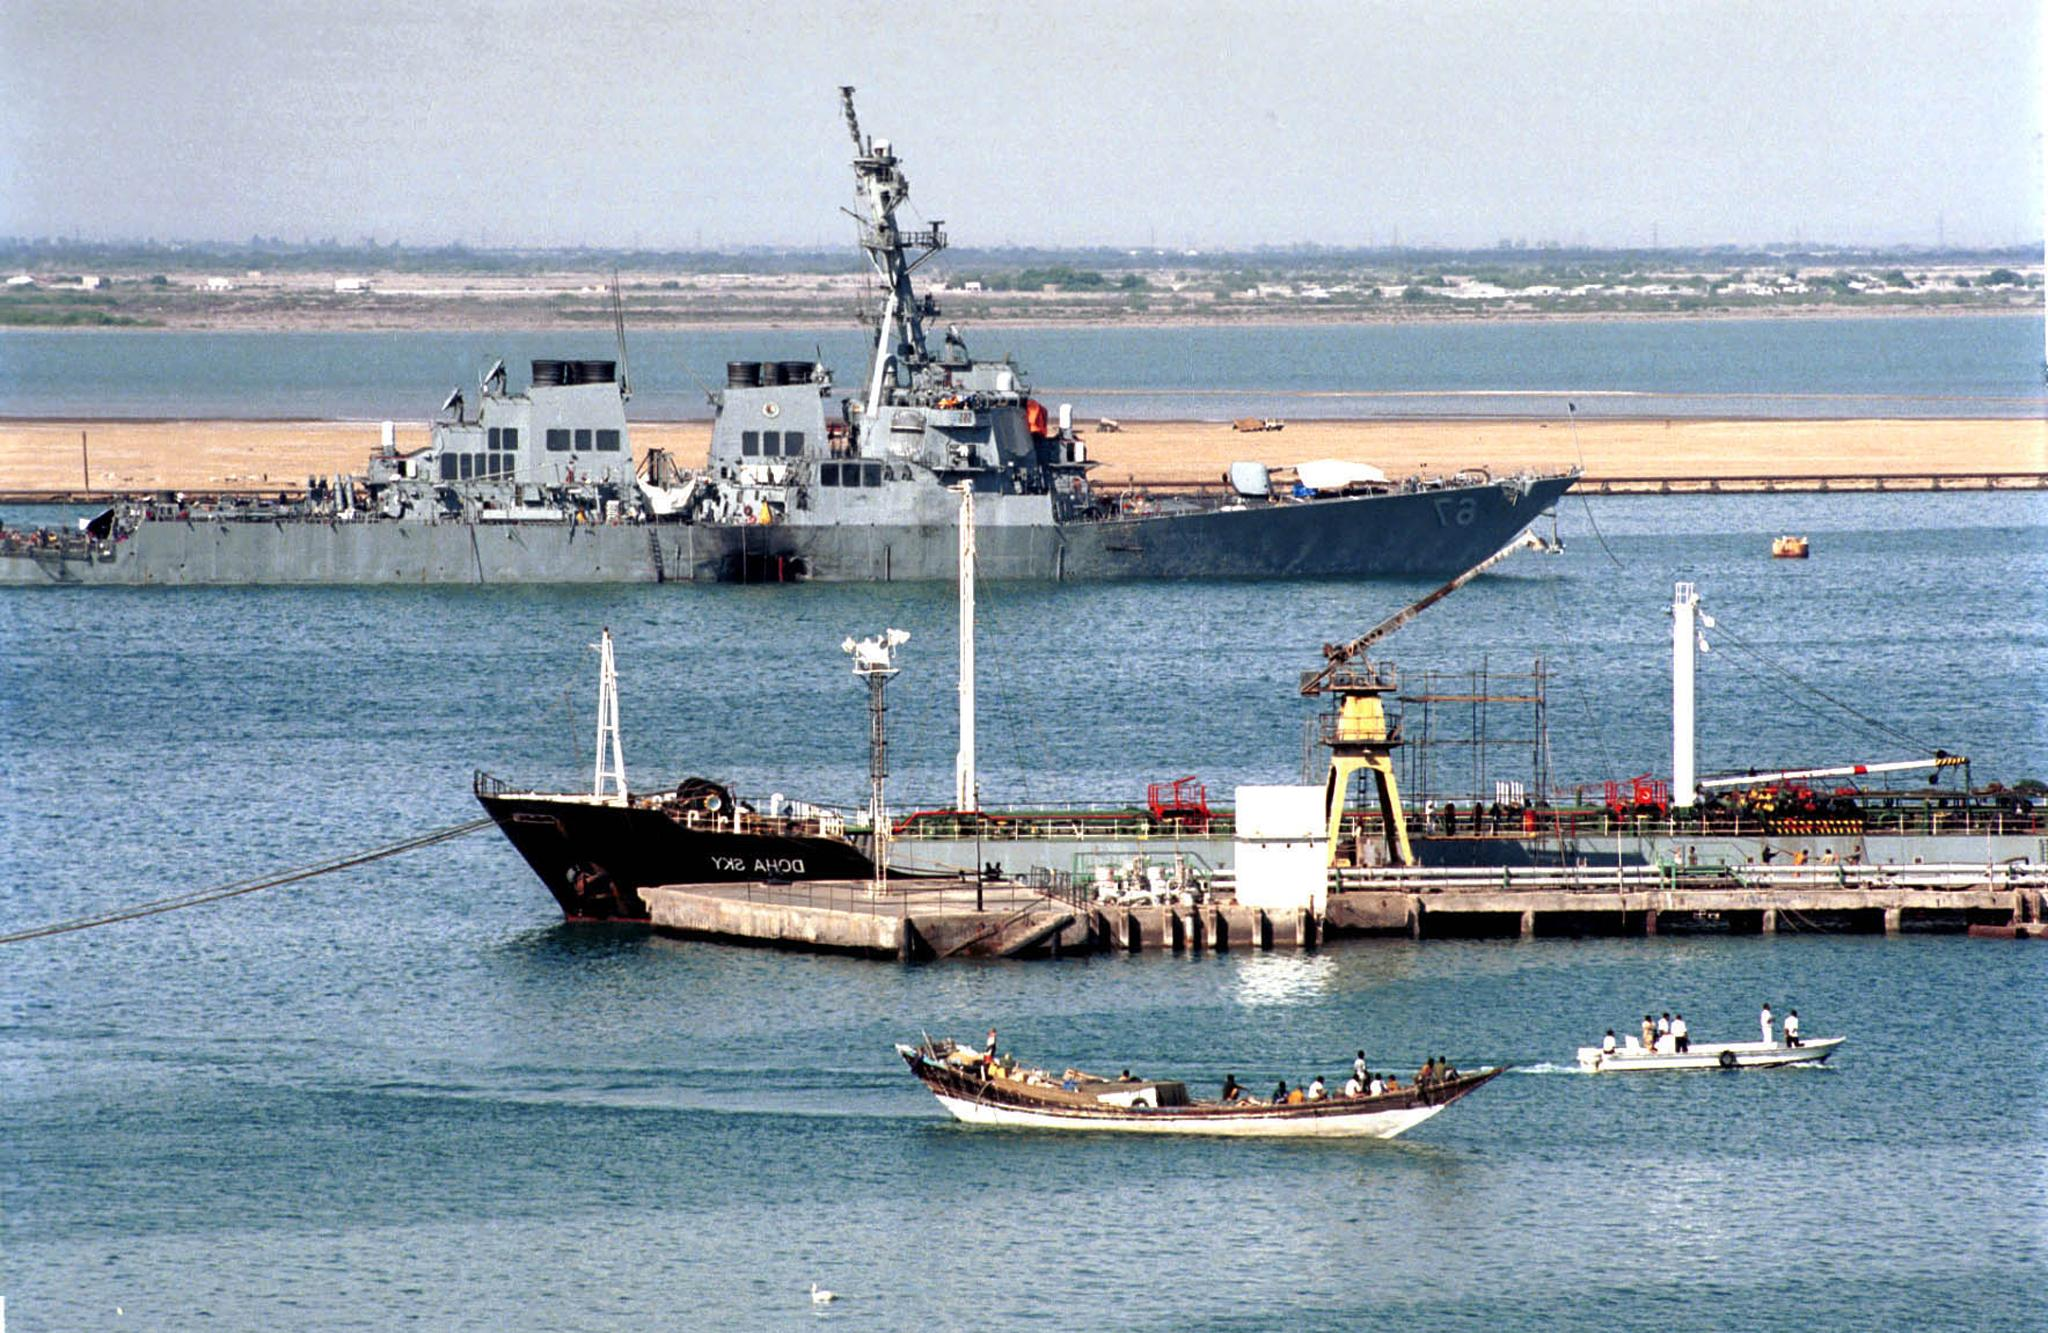 ADEN, YEMEN: Official US investigators patrol the area around the USS Cole destroyer at Aden harbour in southern Yemen 20 October 2000. The New York Times said the United States received two warnings about possible terrorist attacks against US targets in late May and mid-September, well ahead of the October 12 bombing of the US warship in Yemen. (KHALED FAZAA/AFP/Getty Images)